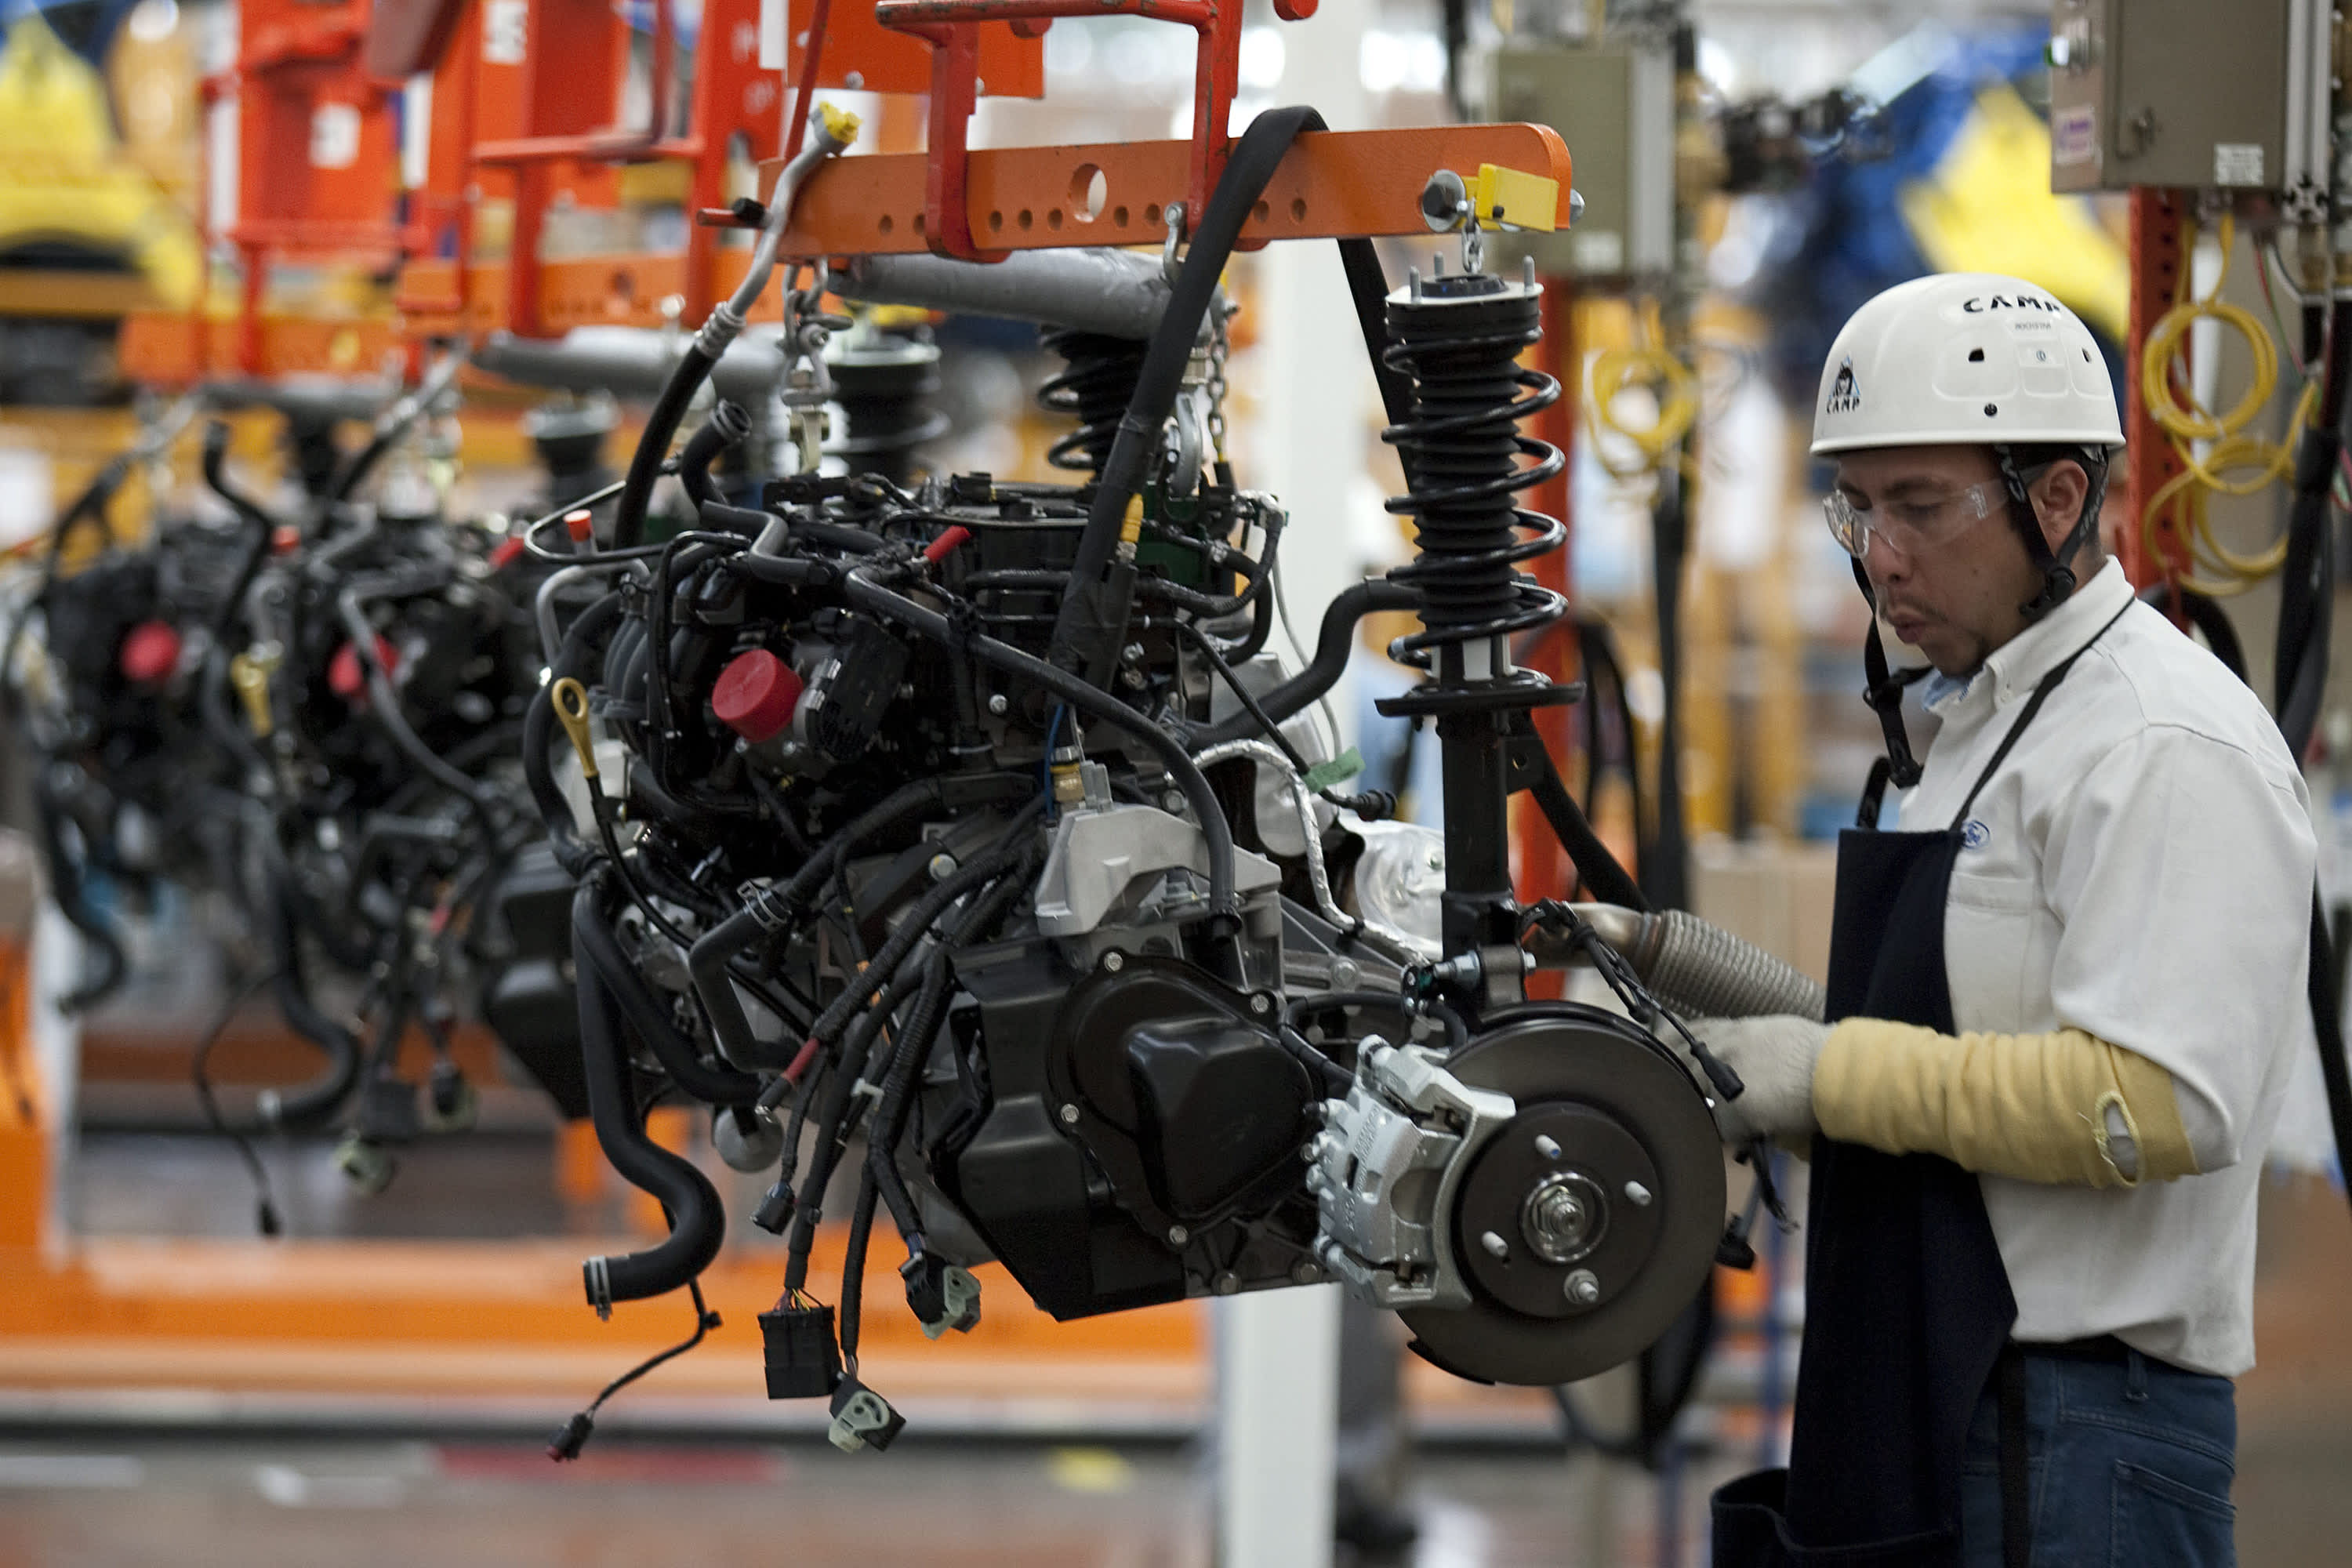 Small cars, not US manufacturing jobs, are moving to Mexico